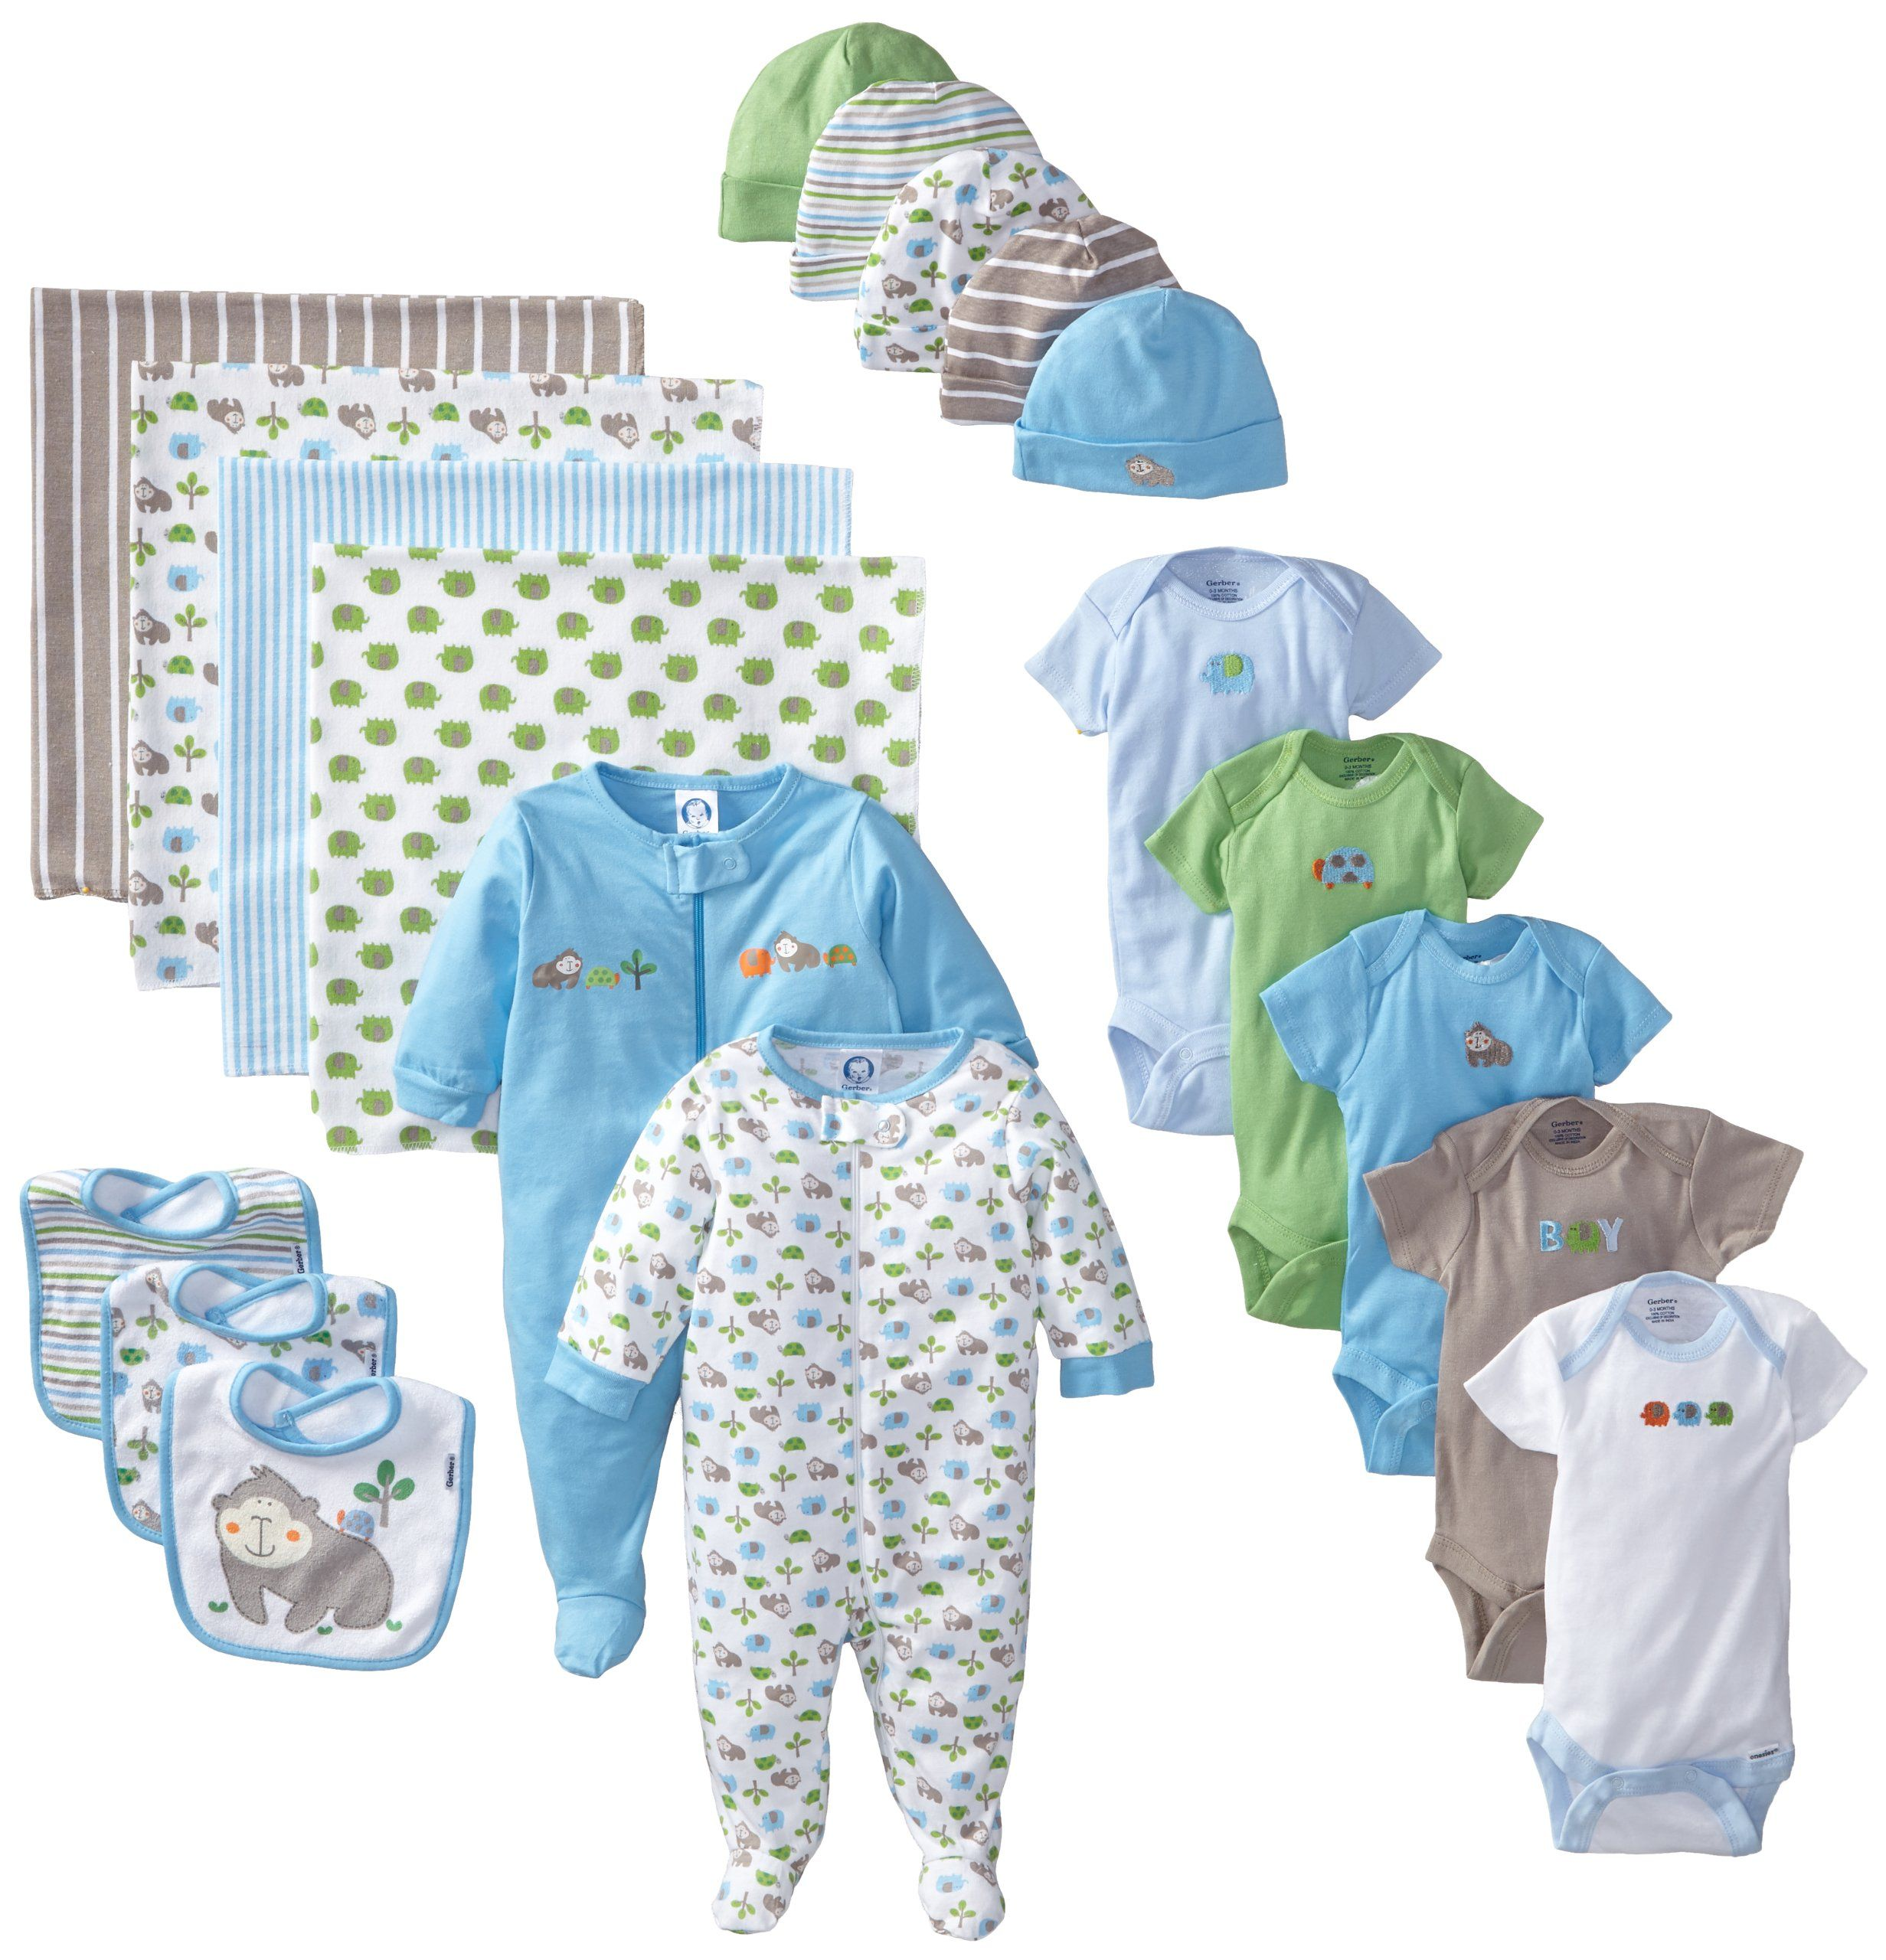 Gerber Baby Boys Newborn 19 Piece Newborn Essentials Gift Set Blue 0 3 Months Newborn Baby Boy Gifts Newborn Boy Clothes Gerber Baby